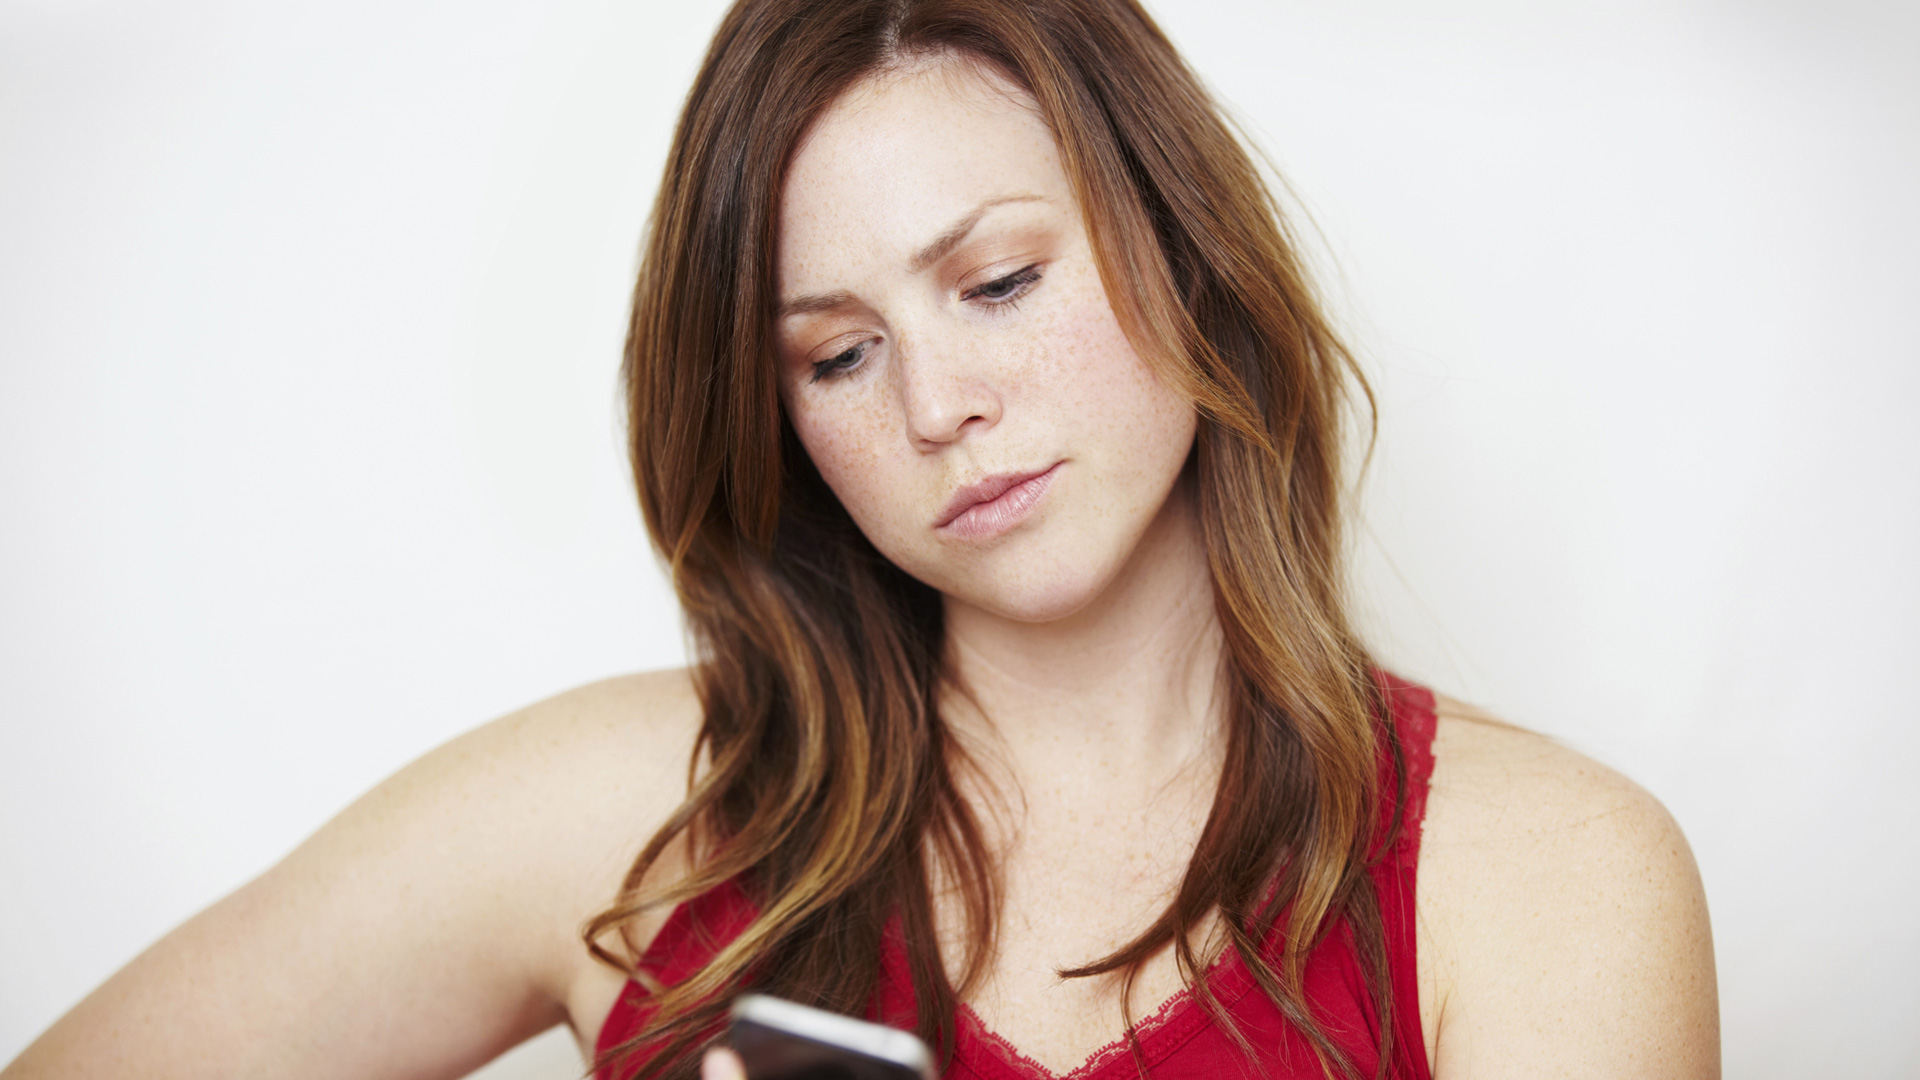 Annoyed woman looking at smartphone